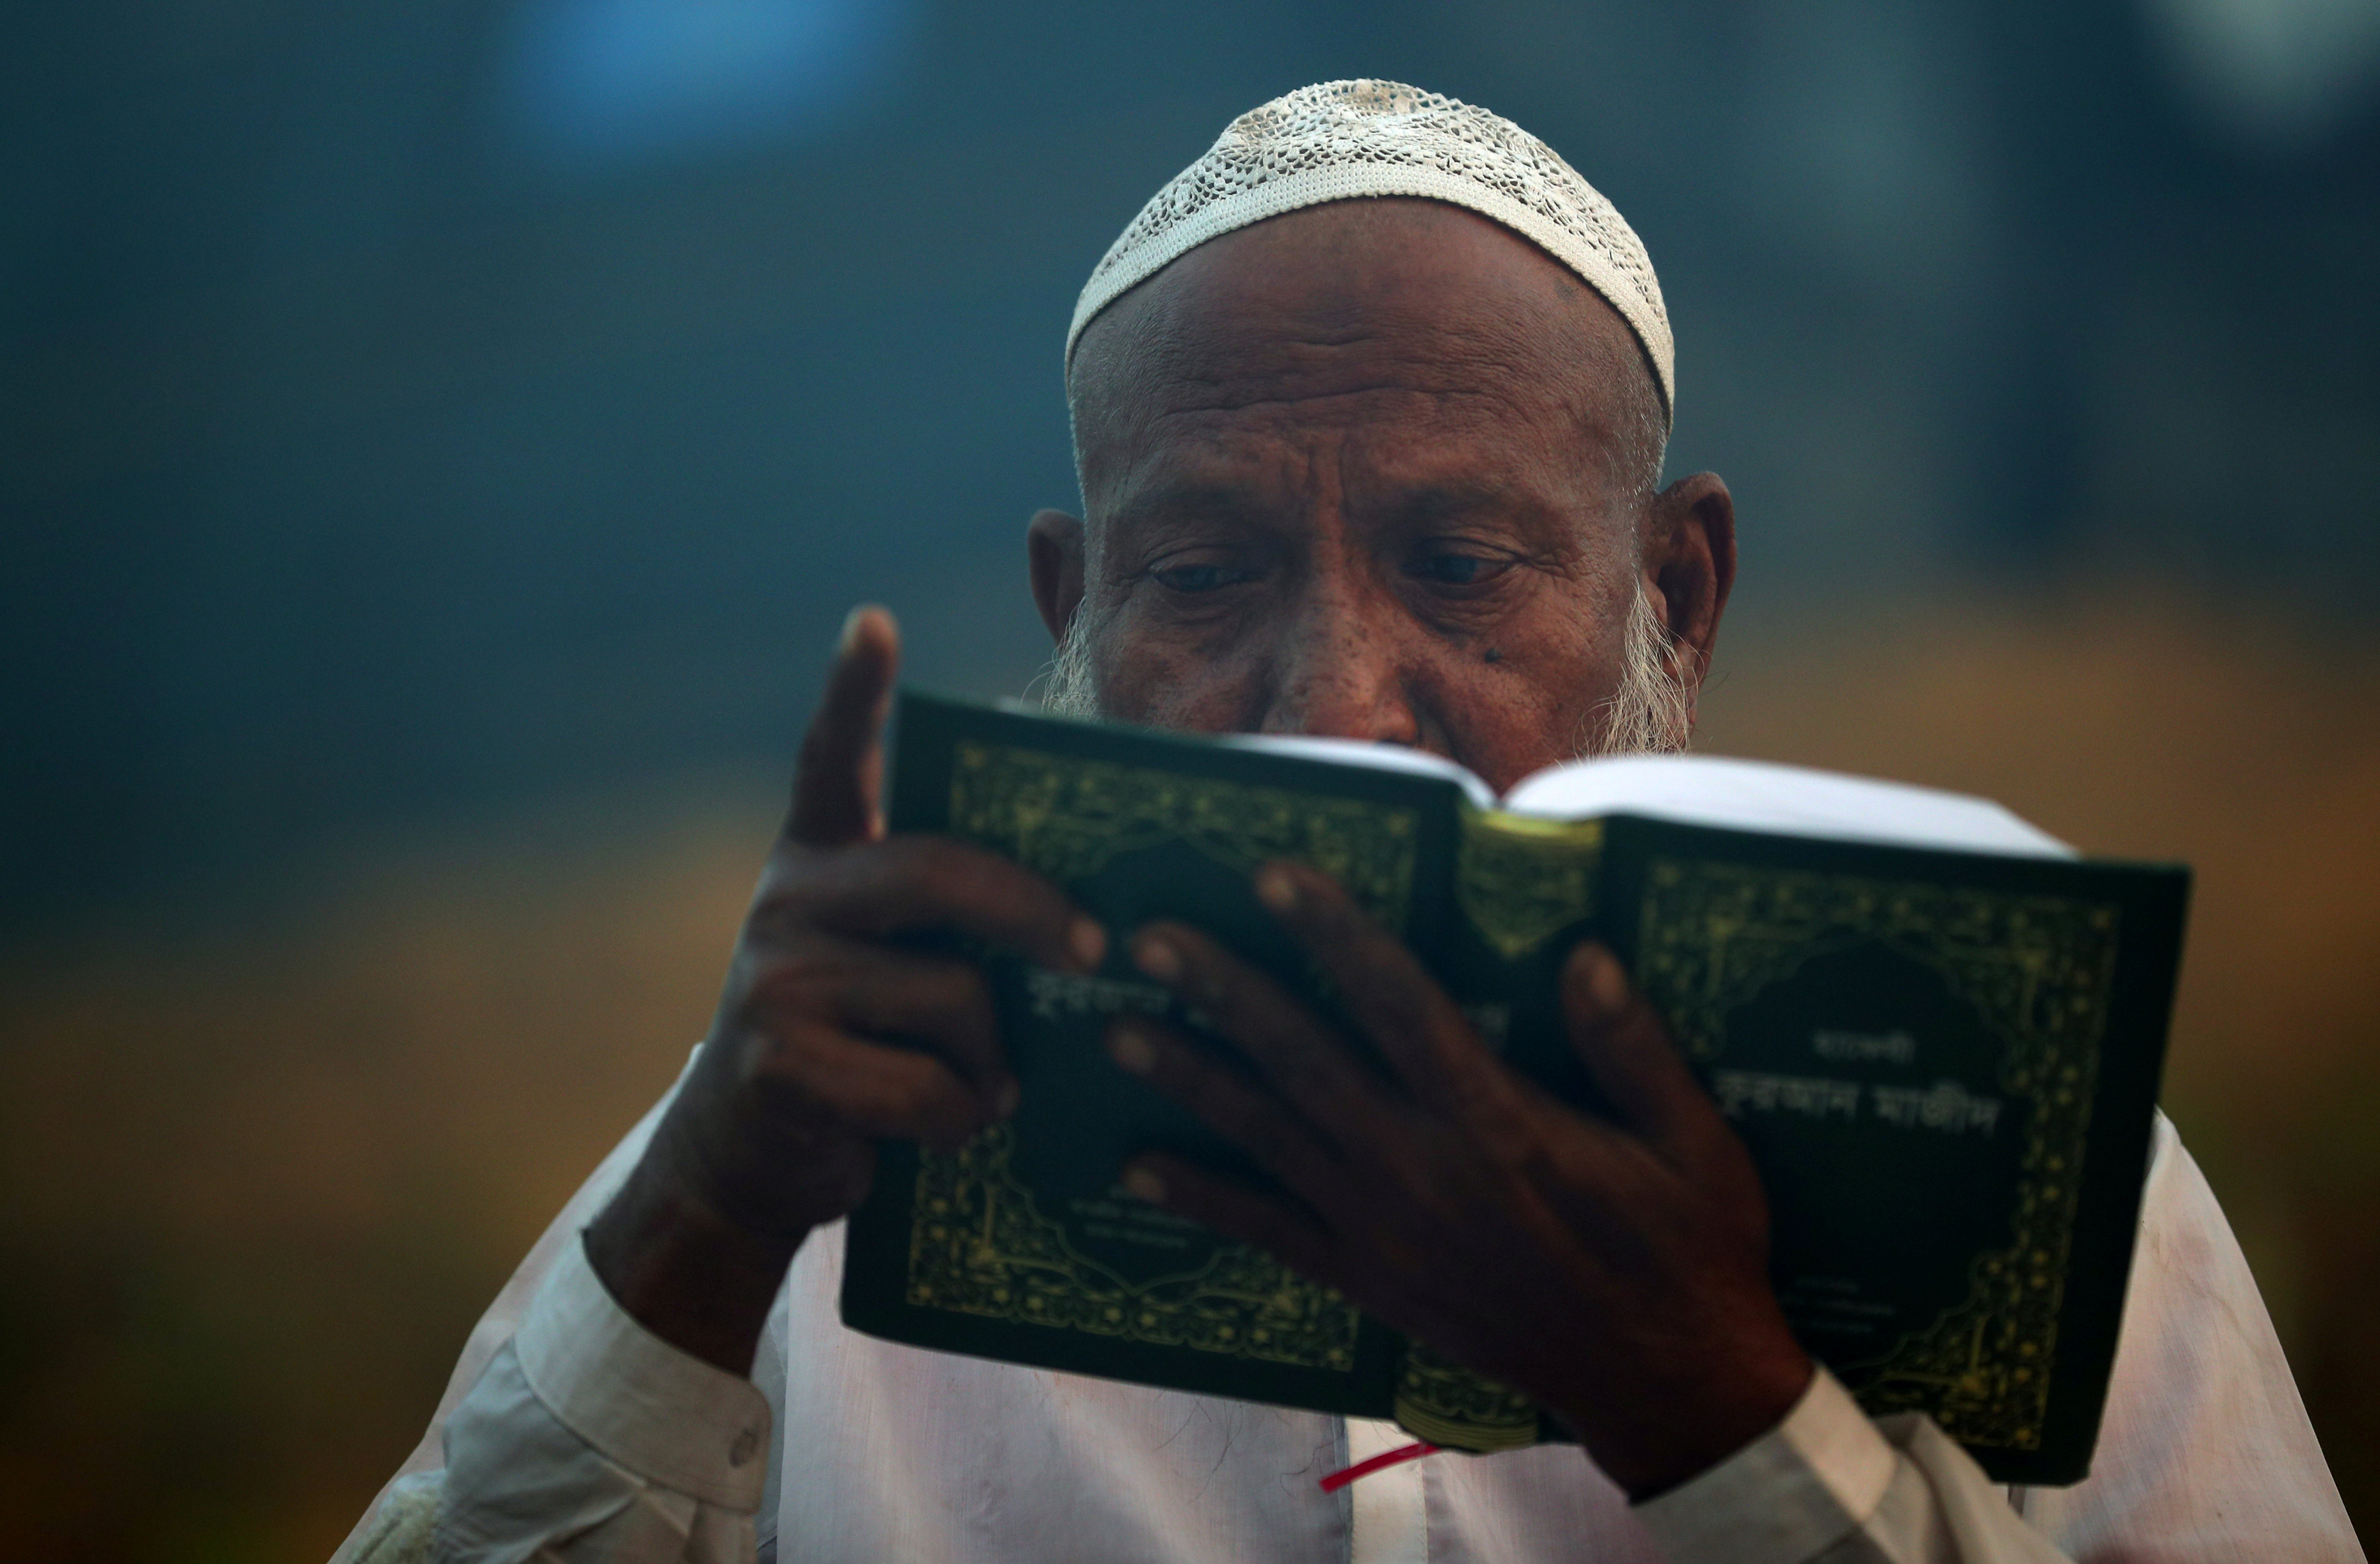 A Rohingya refugee reads the Quran during sunrise in Balukhali refugee camp near Cox's Bazar, Bangladesh, October 26, 2017. REUTERS/Hannah McKay - RC1E91534850